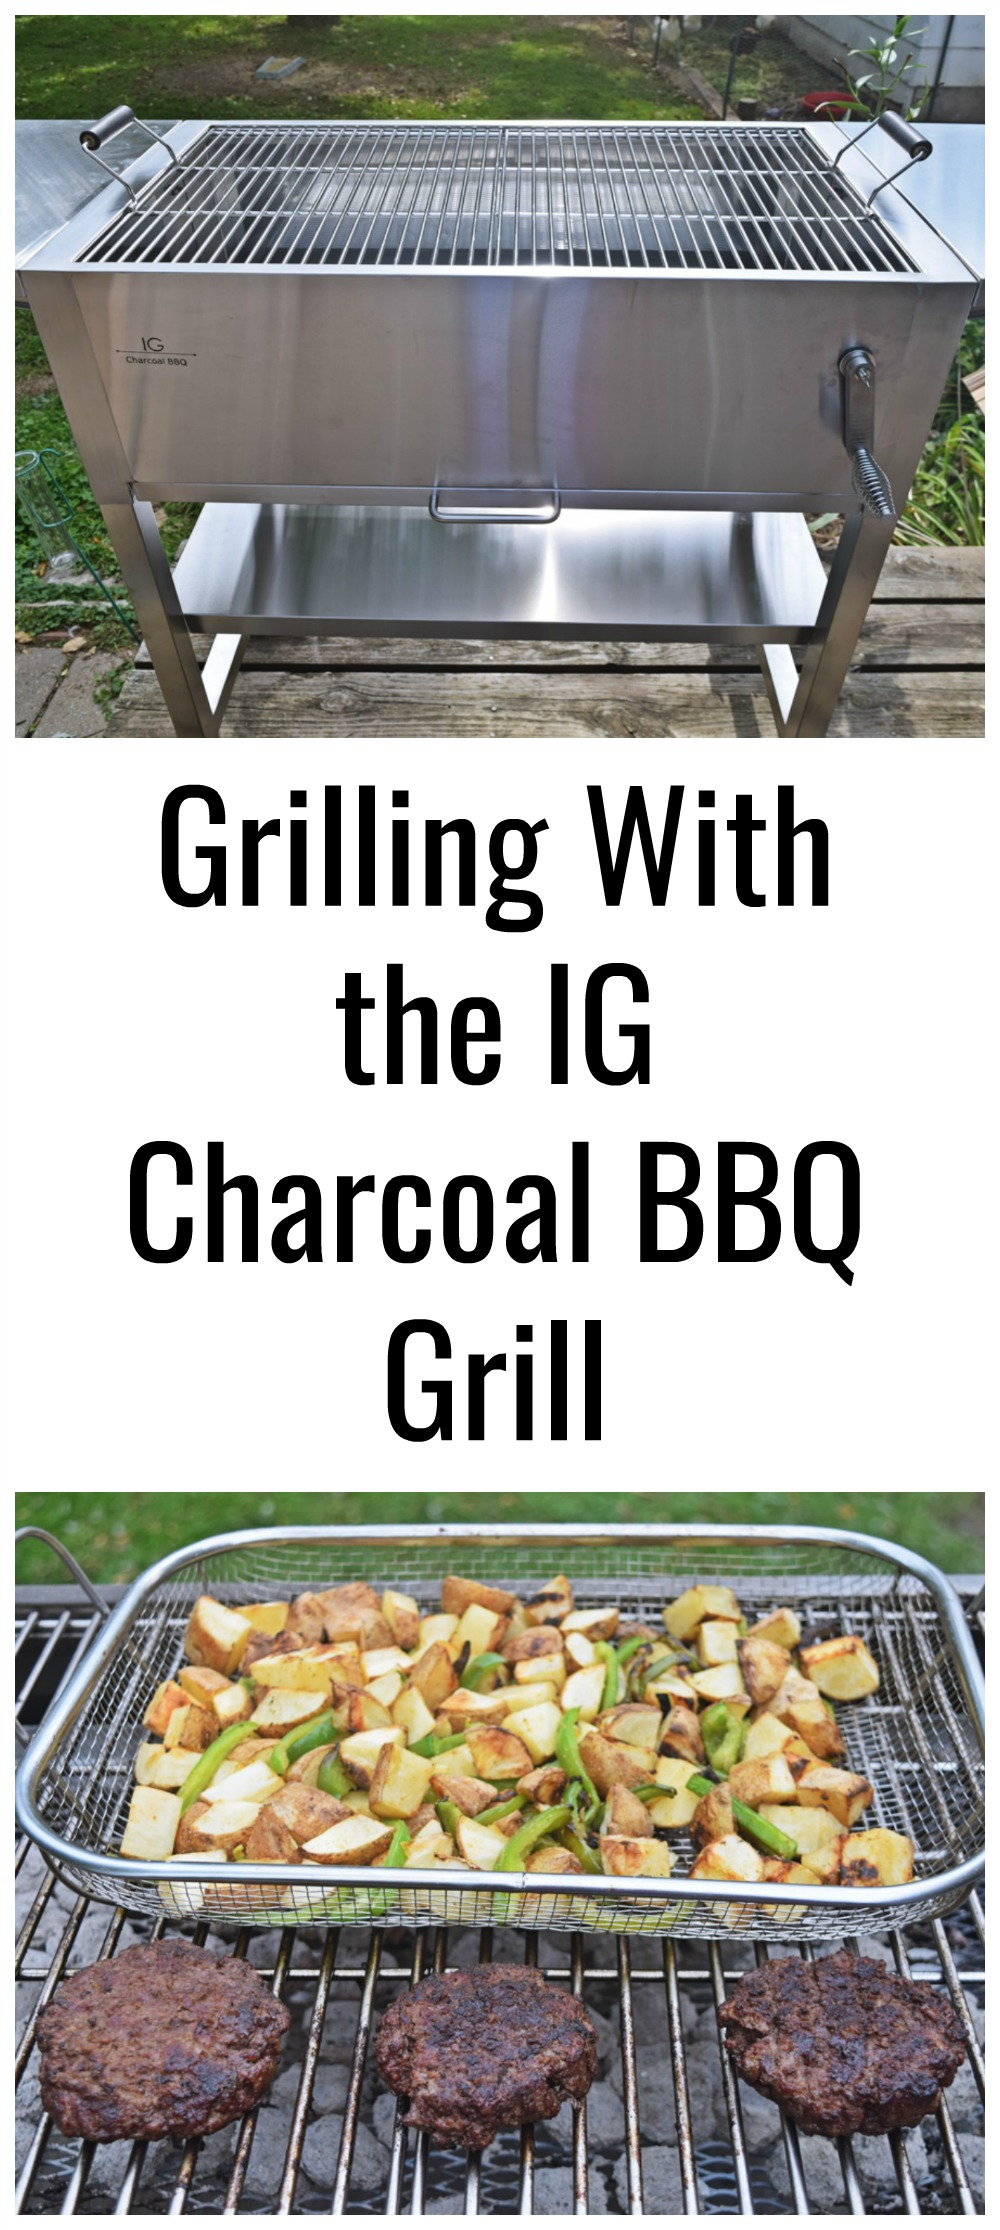 Grilling Out With The Ig Charcoal Bbq Grill Life With Kathy This argentinean style stainless steel charcoal has made a lot of buzz lately. life with kathy